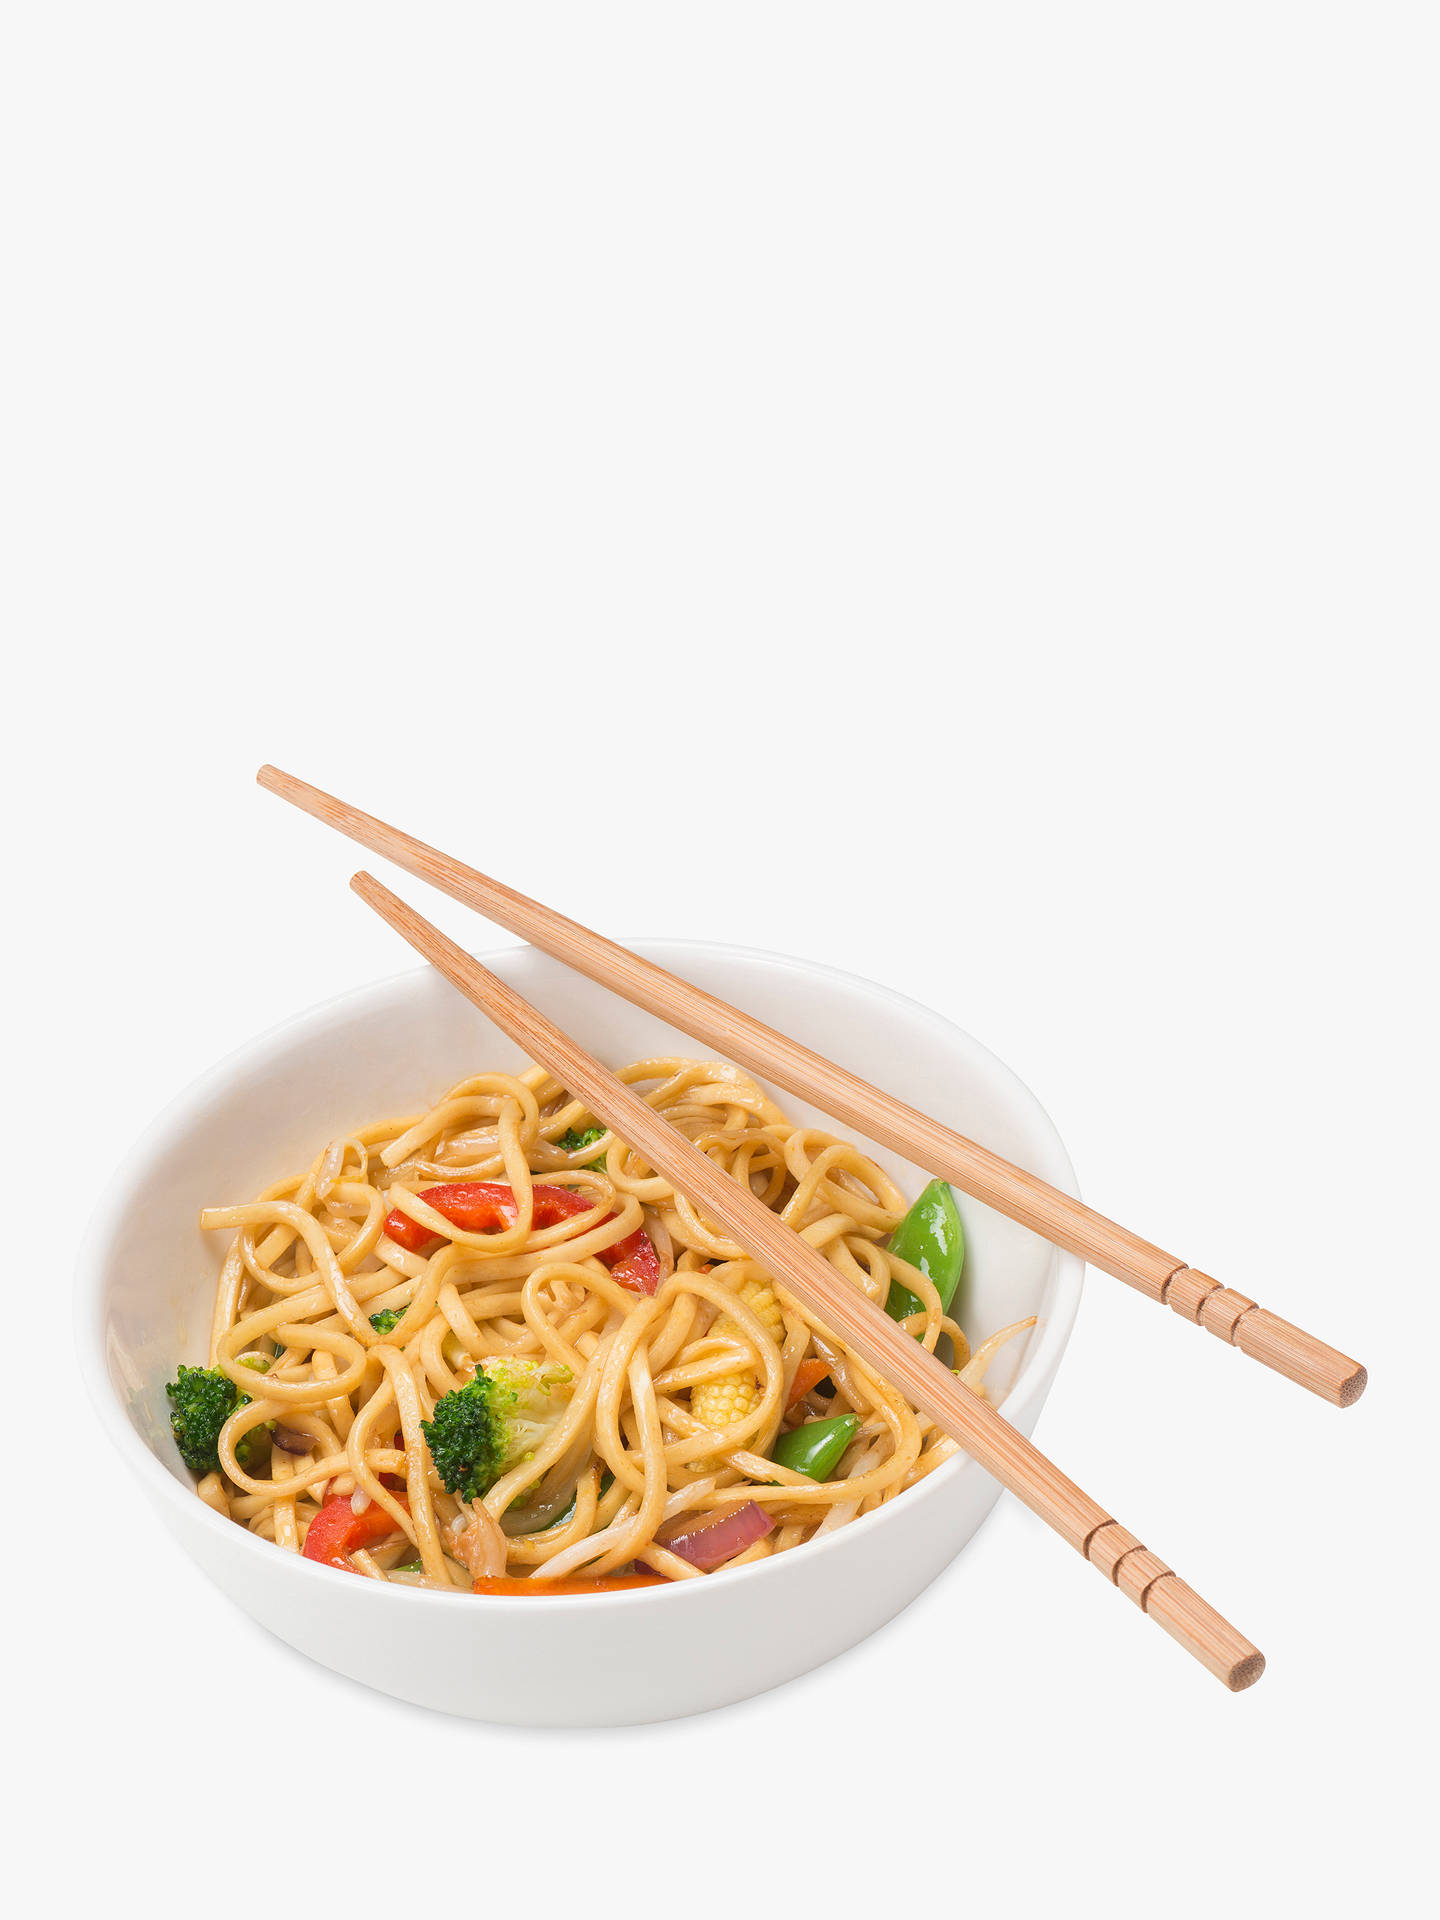 Buy Ken Hom Bamboo Chopsticks, 4 Pairs Online at johnlewis.com